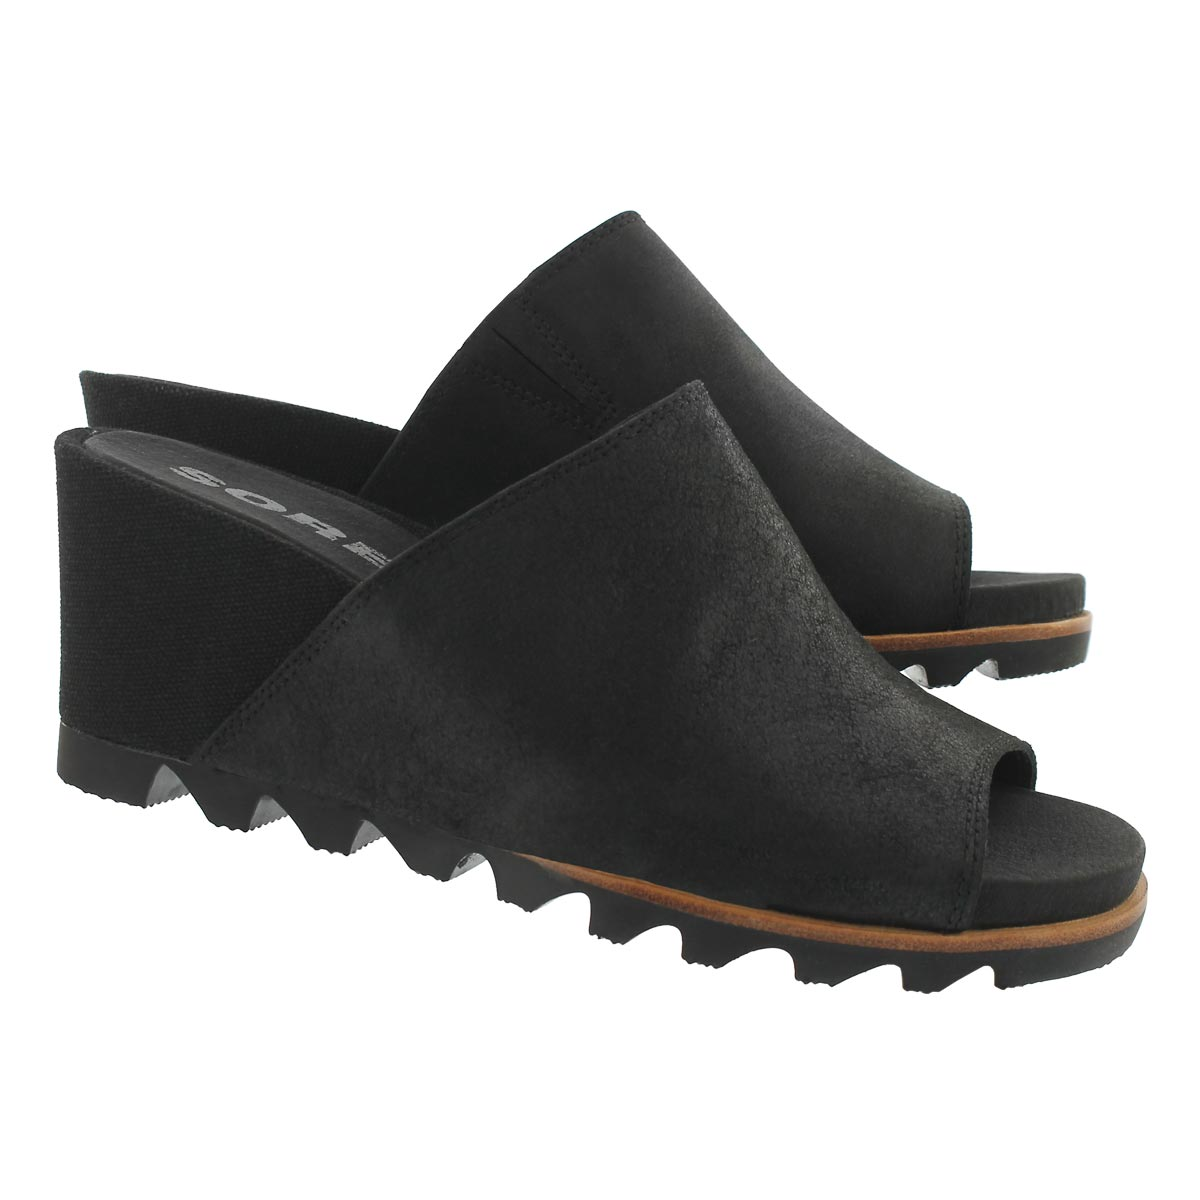 Lds Joanie Mule II black wedge sandal